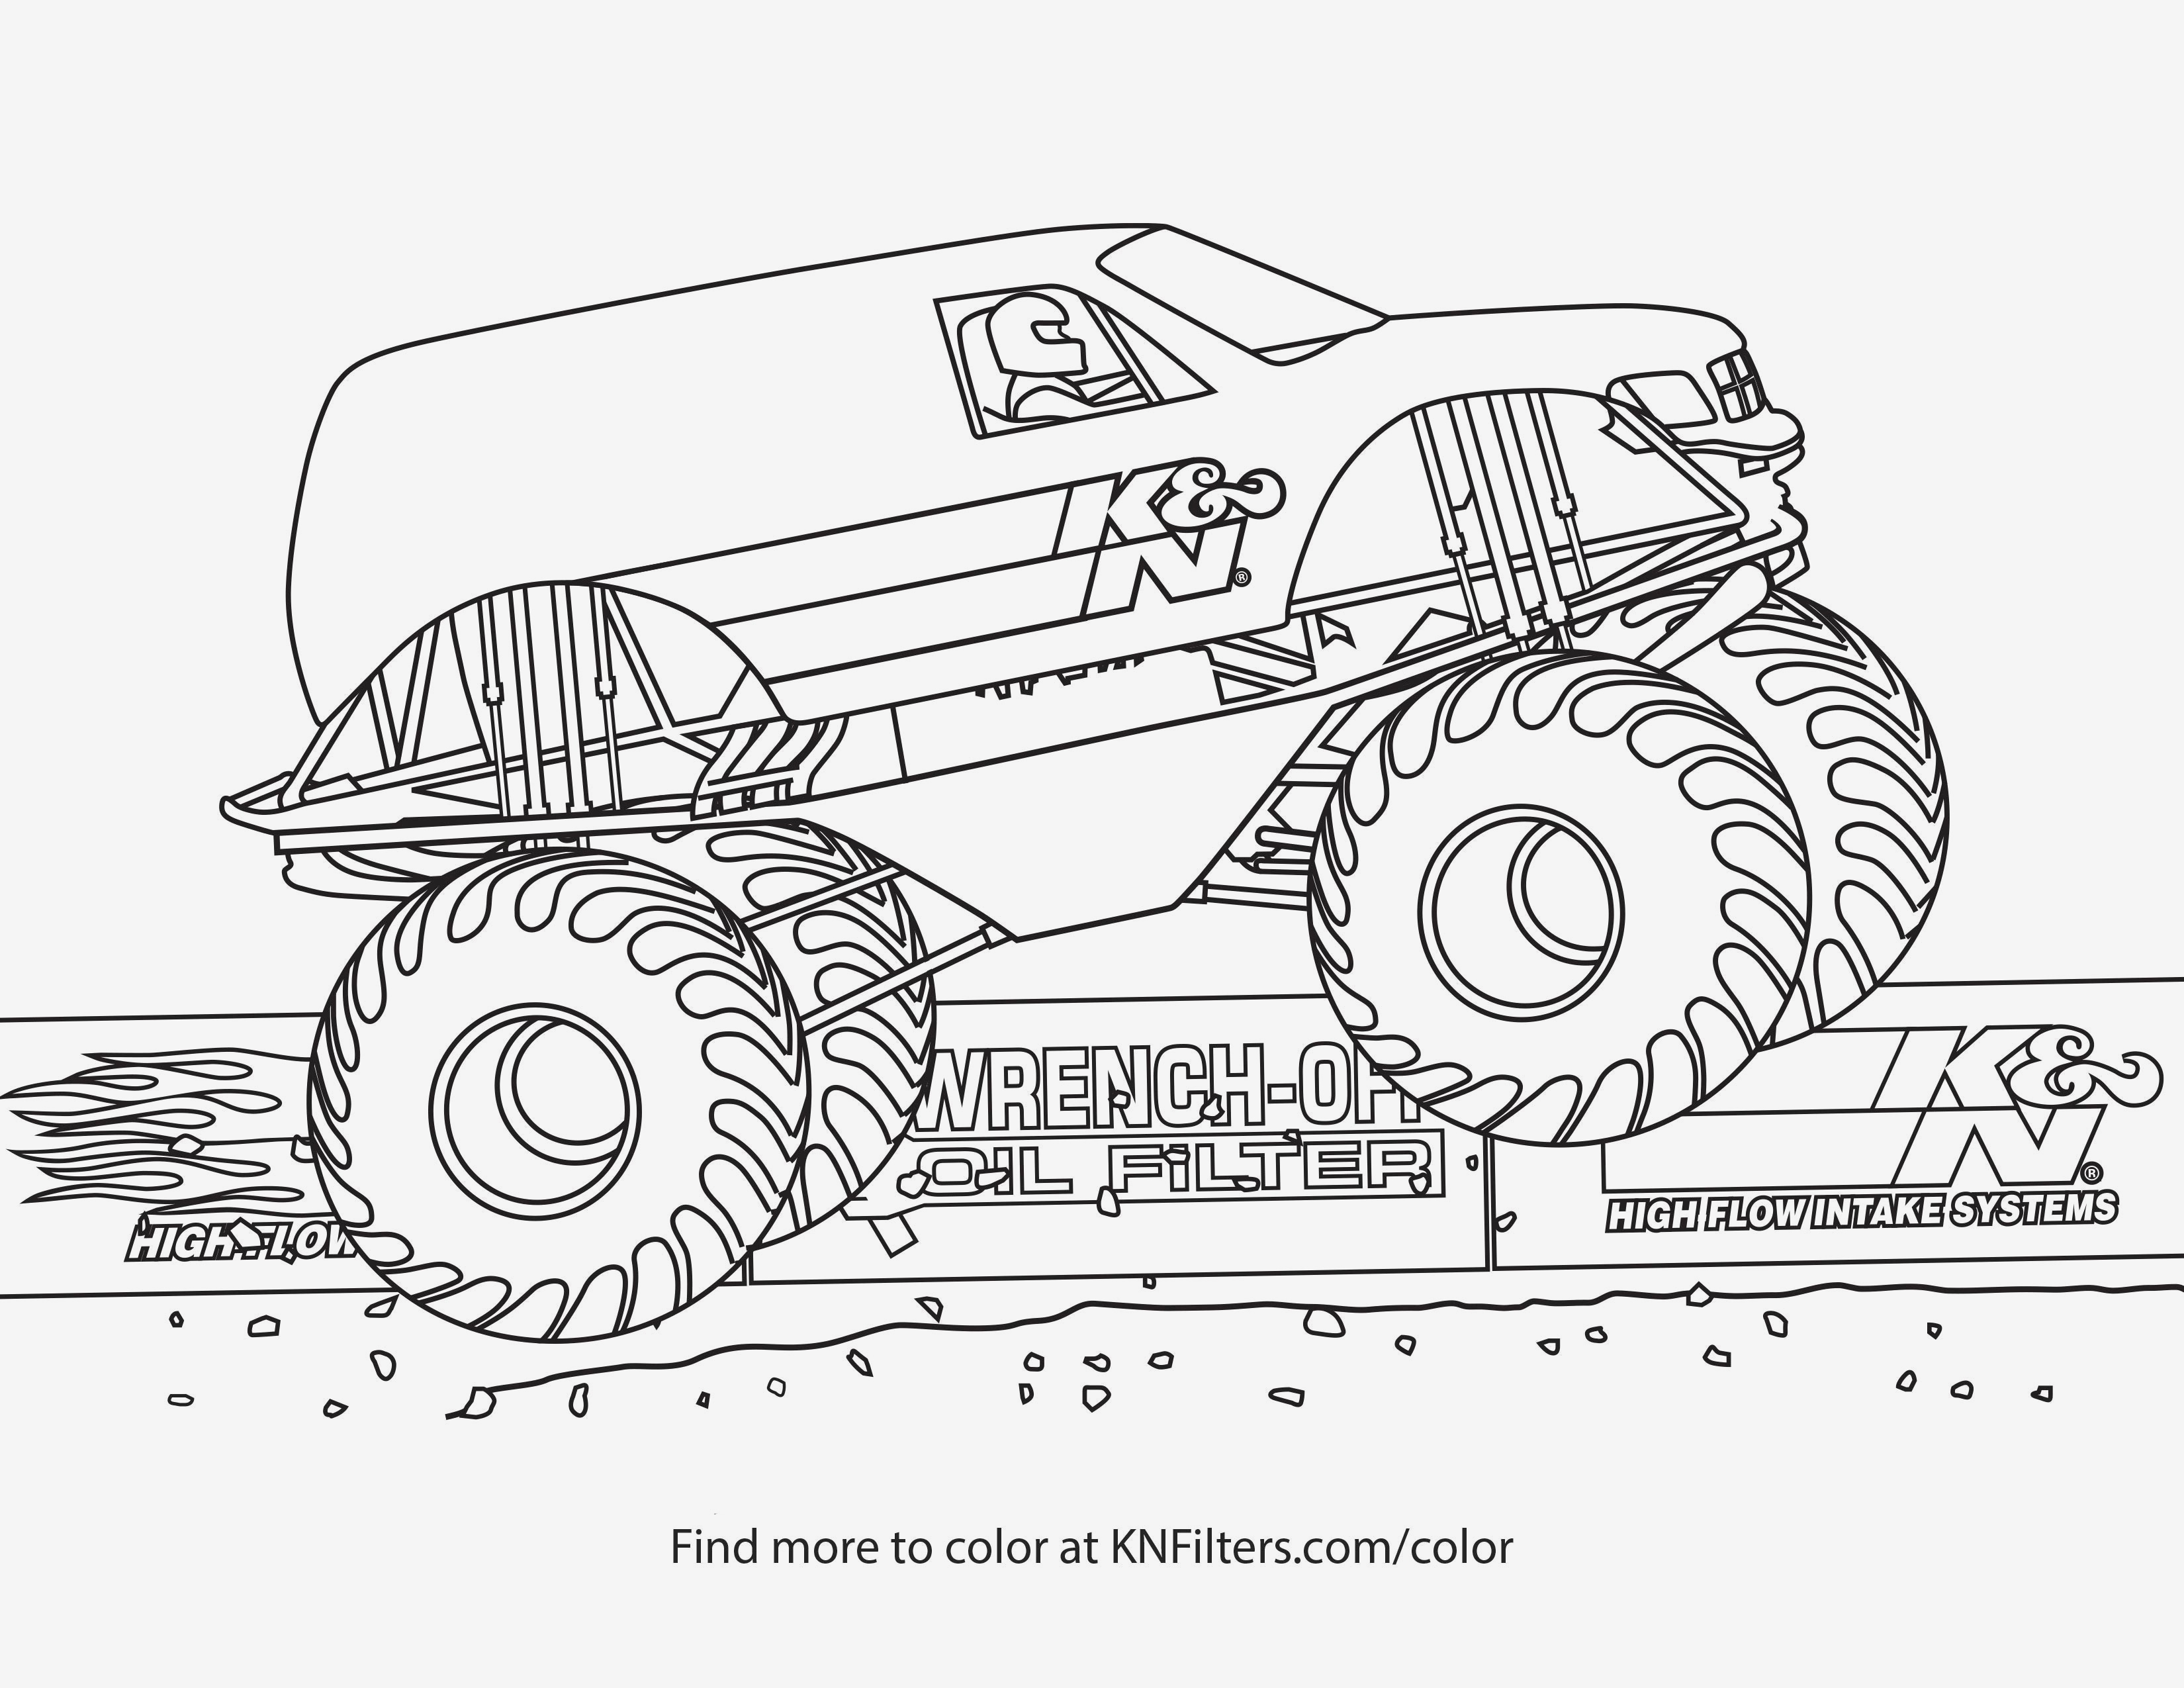 Monster Trucks Printable Coloring Pages  Gallery 13i - To print for your project